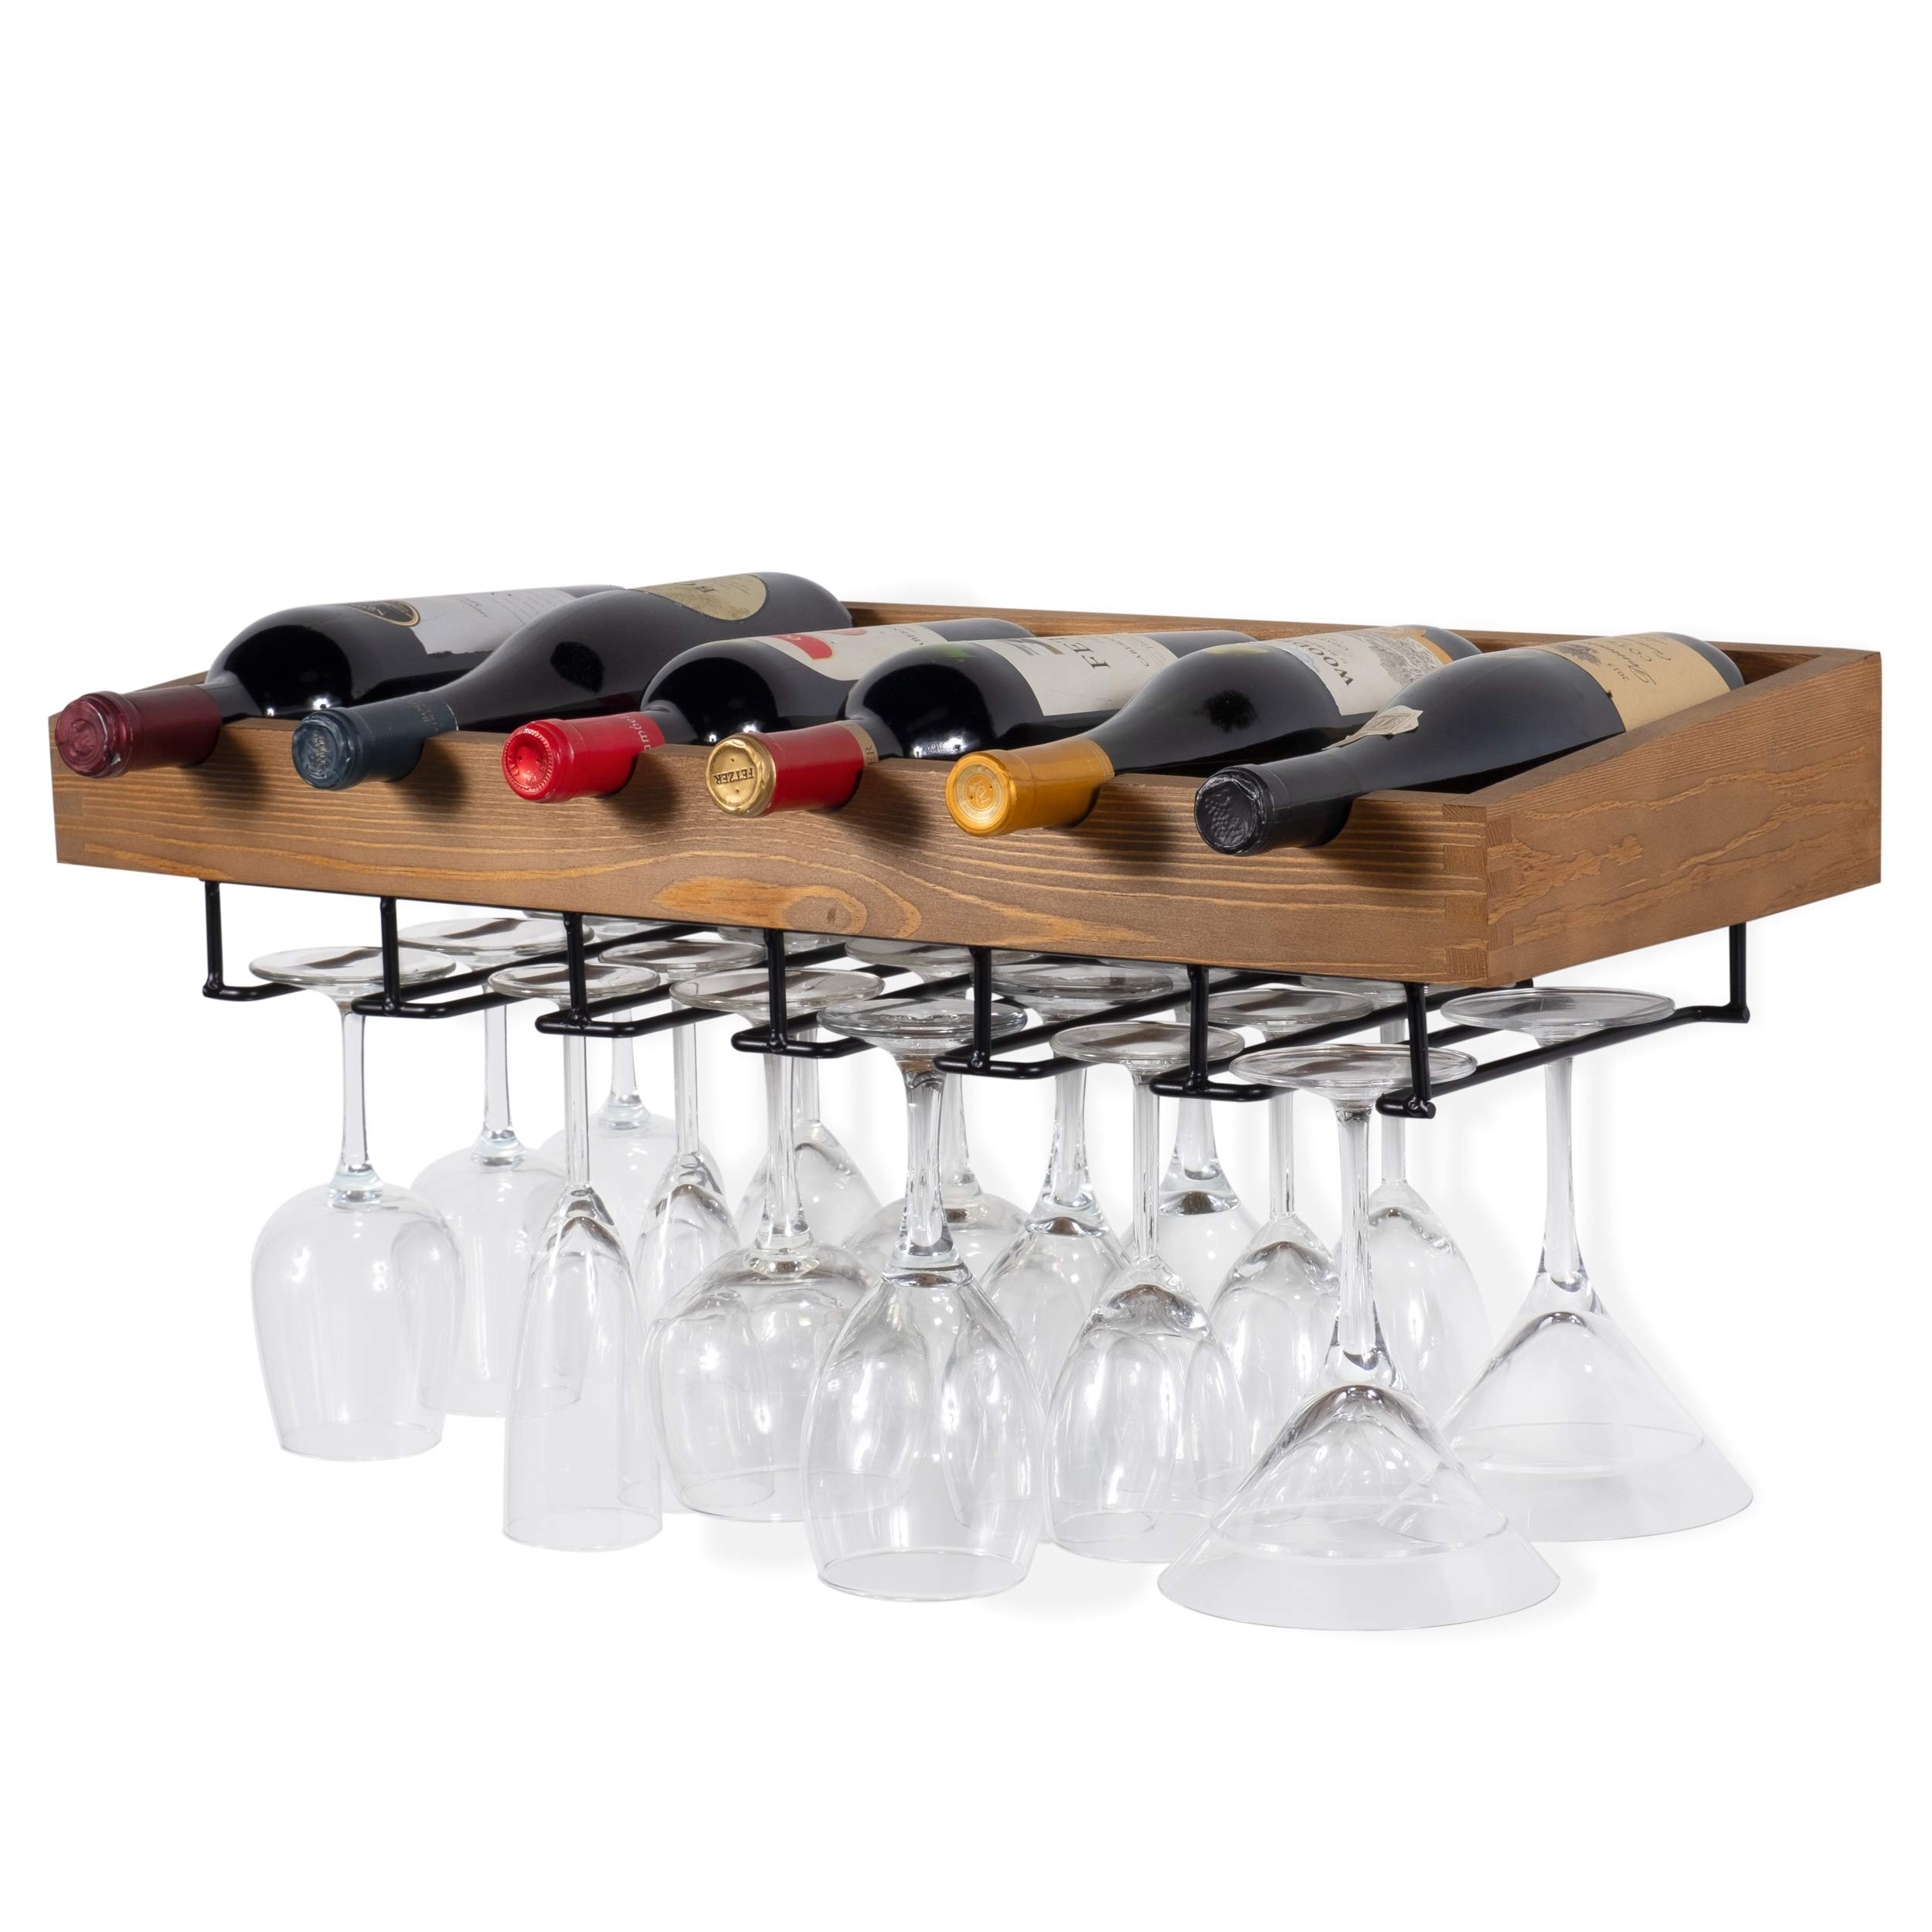 brightmaison Wall Mounted Walnut Stained Wood Wine Stem Rack for Bottles and Stemware Glass Storage Holder Organizer Display (Set of 1) by brightmaison